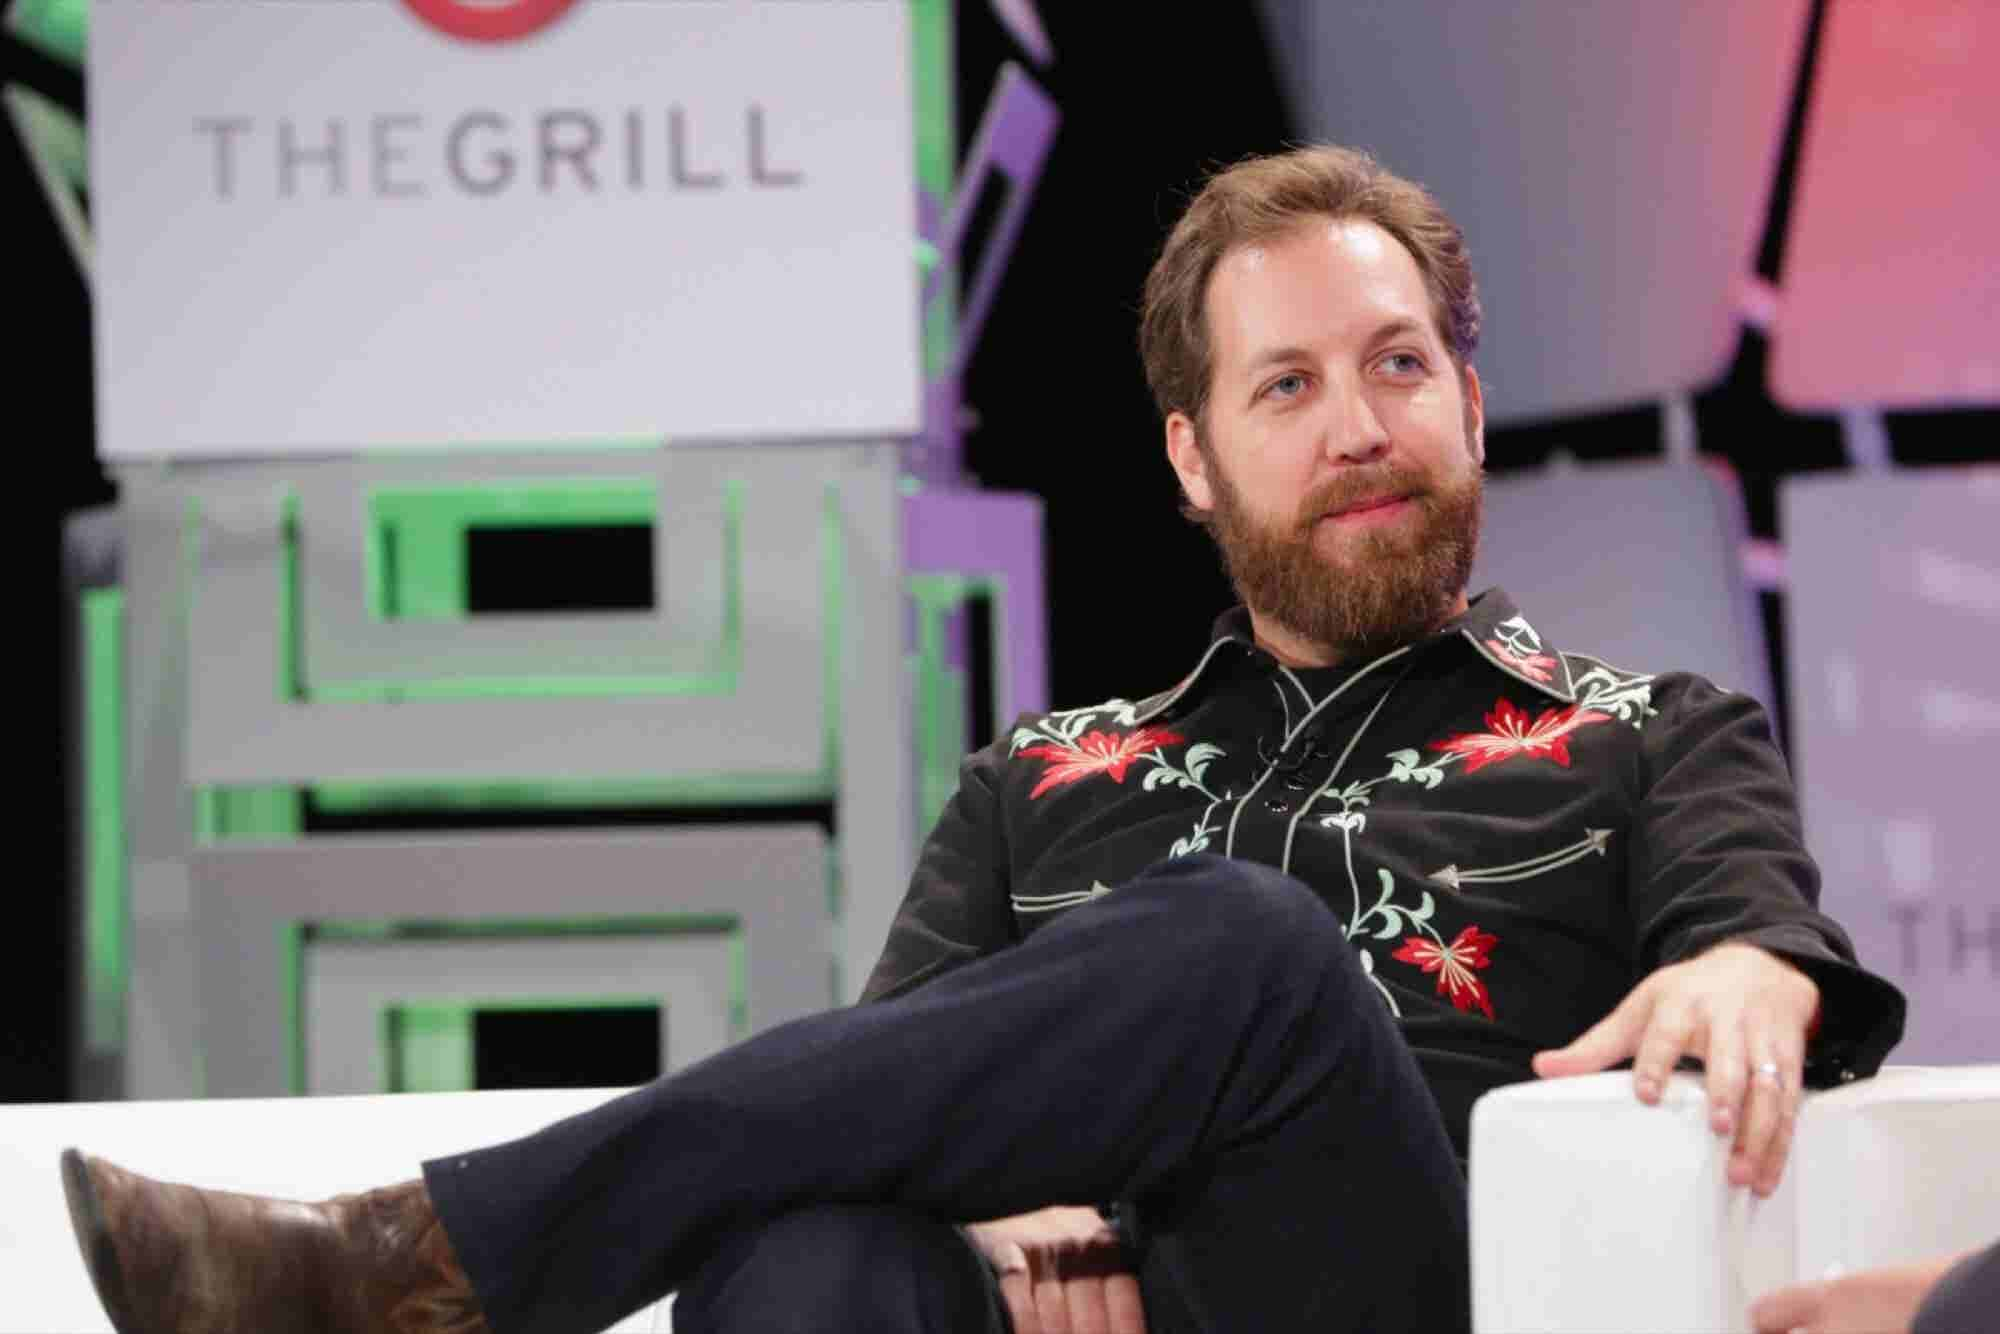 Not Believing His Own BS: Why Shark Tank Star Chris Sacca Wears Those Funky Embroidered Cowboy Shirts